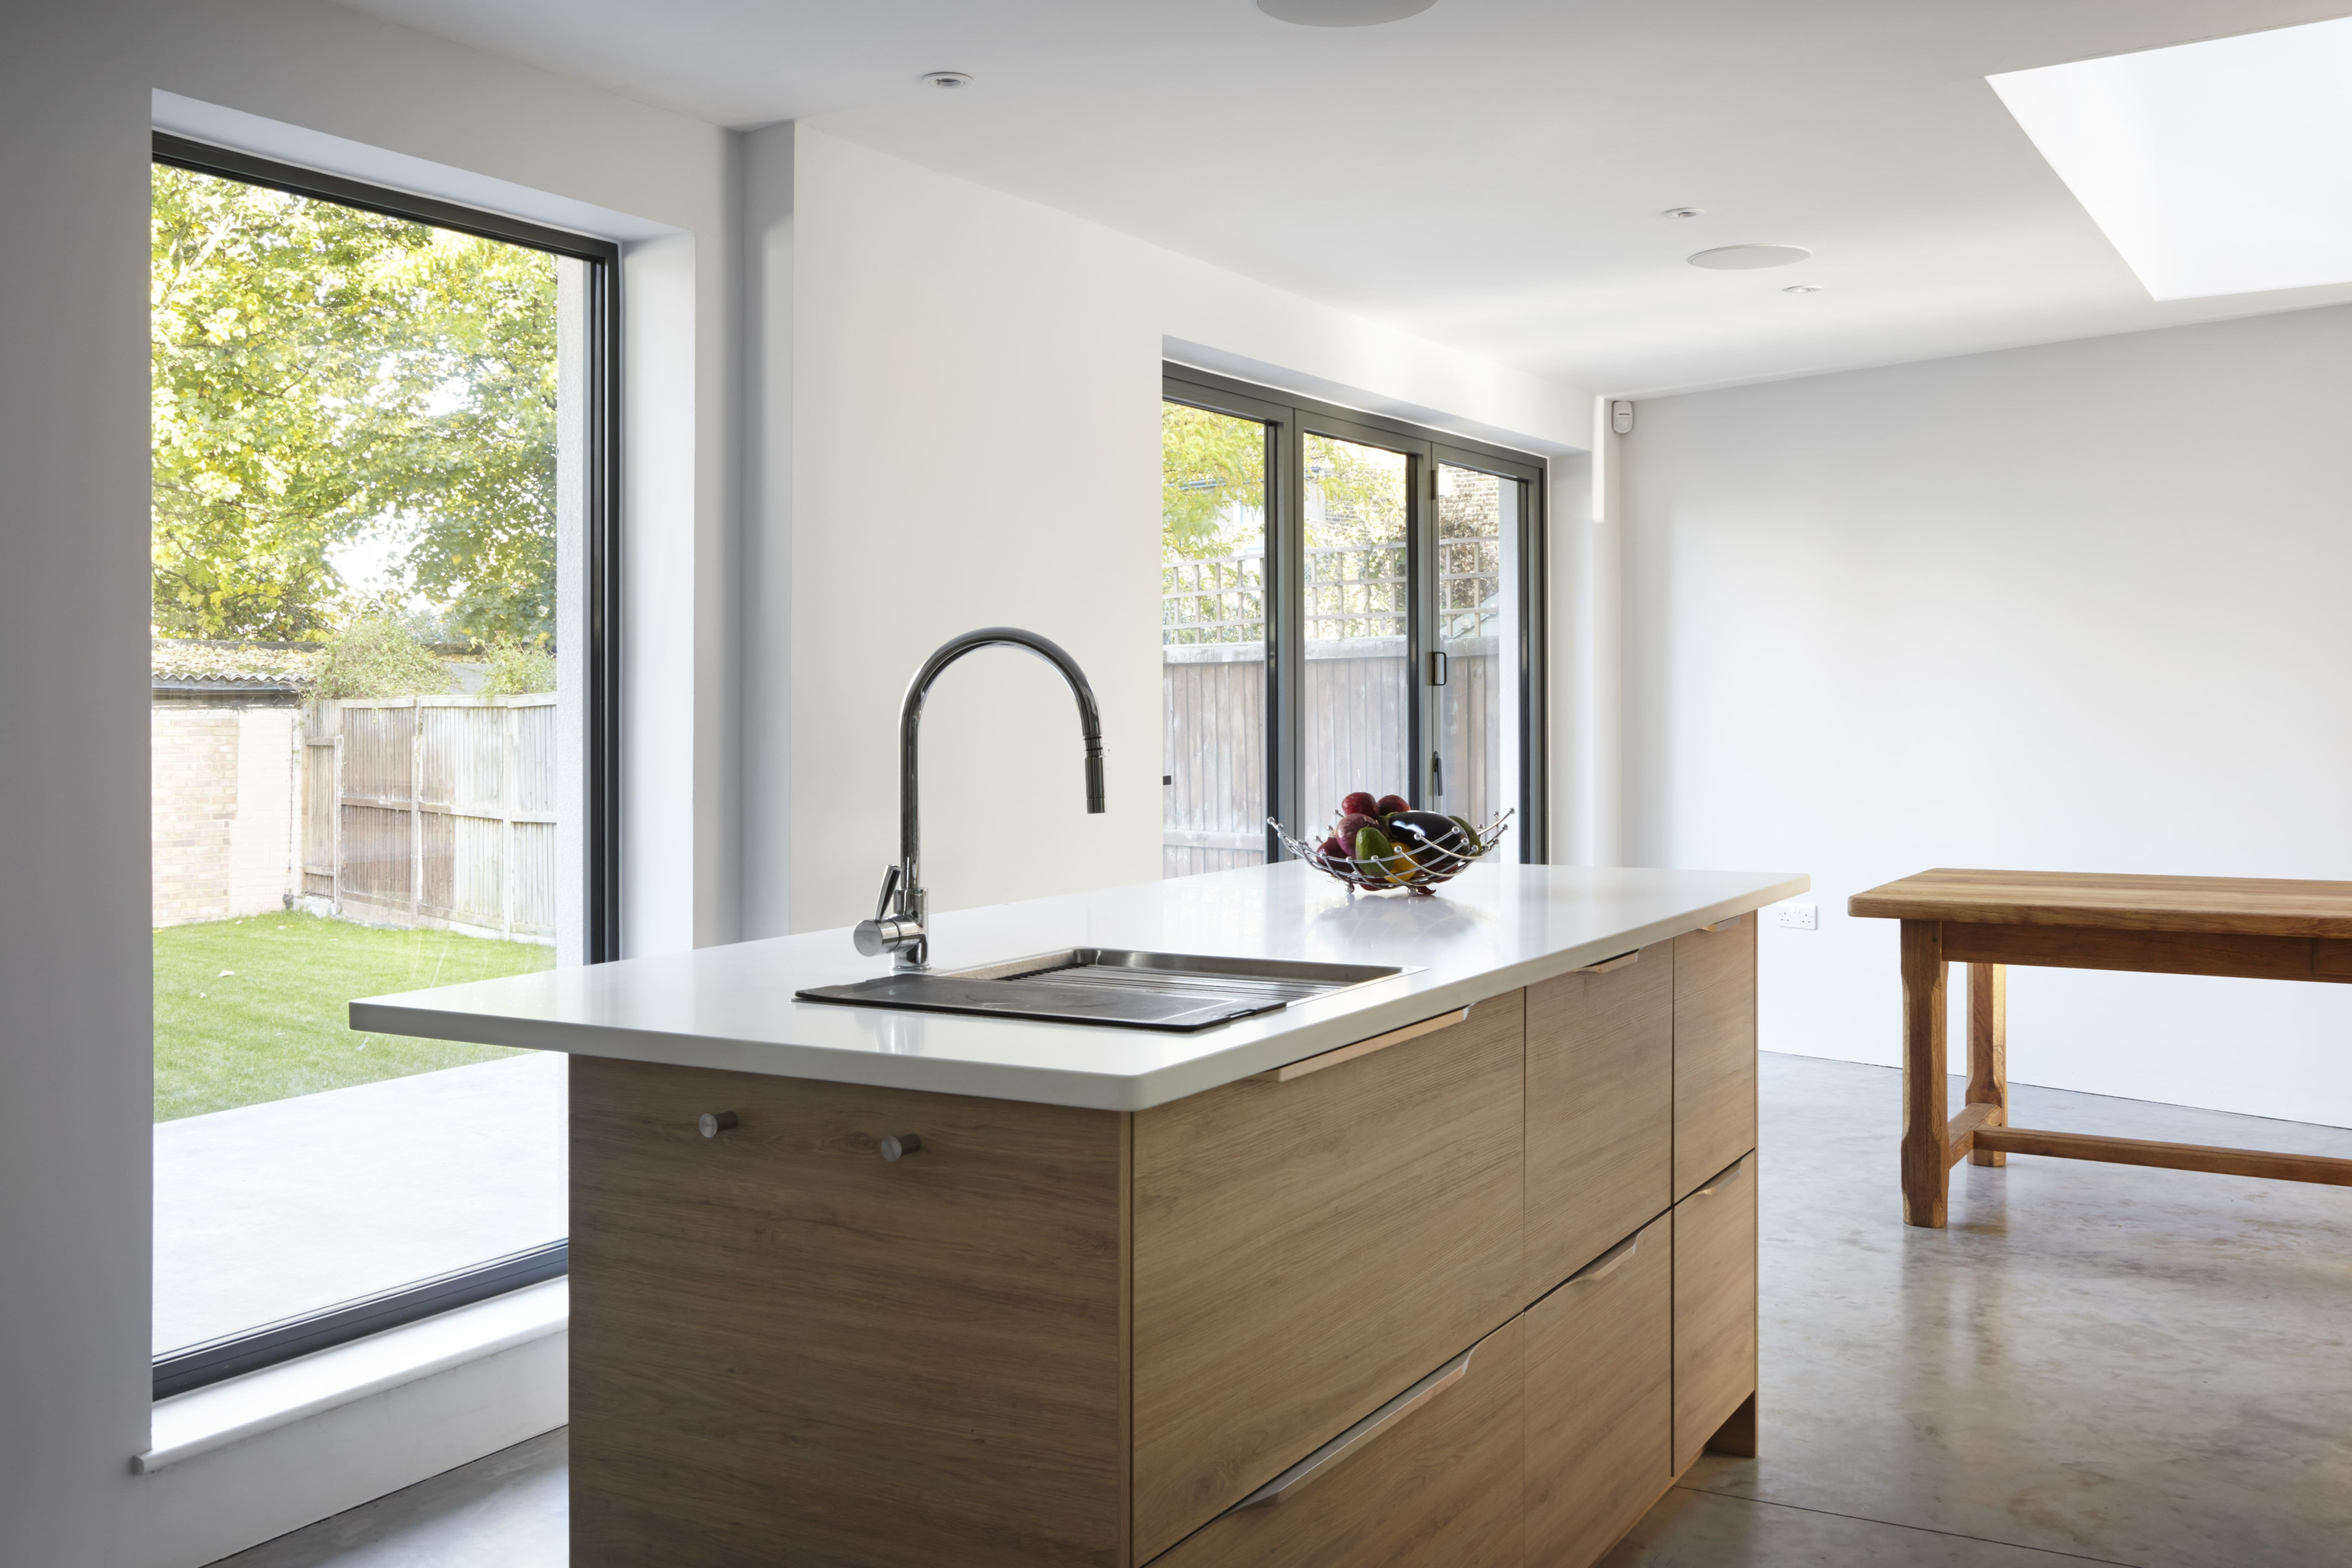 The kitchen has a simplistic style, designed by Joe. Get matched ...